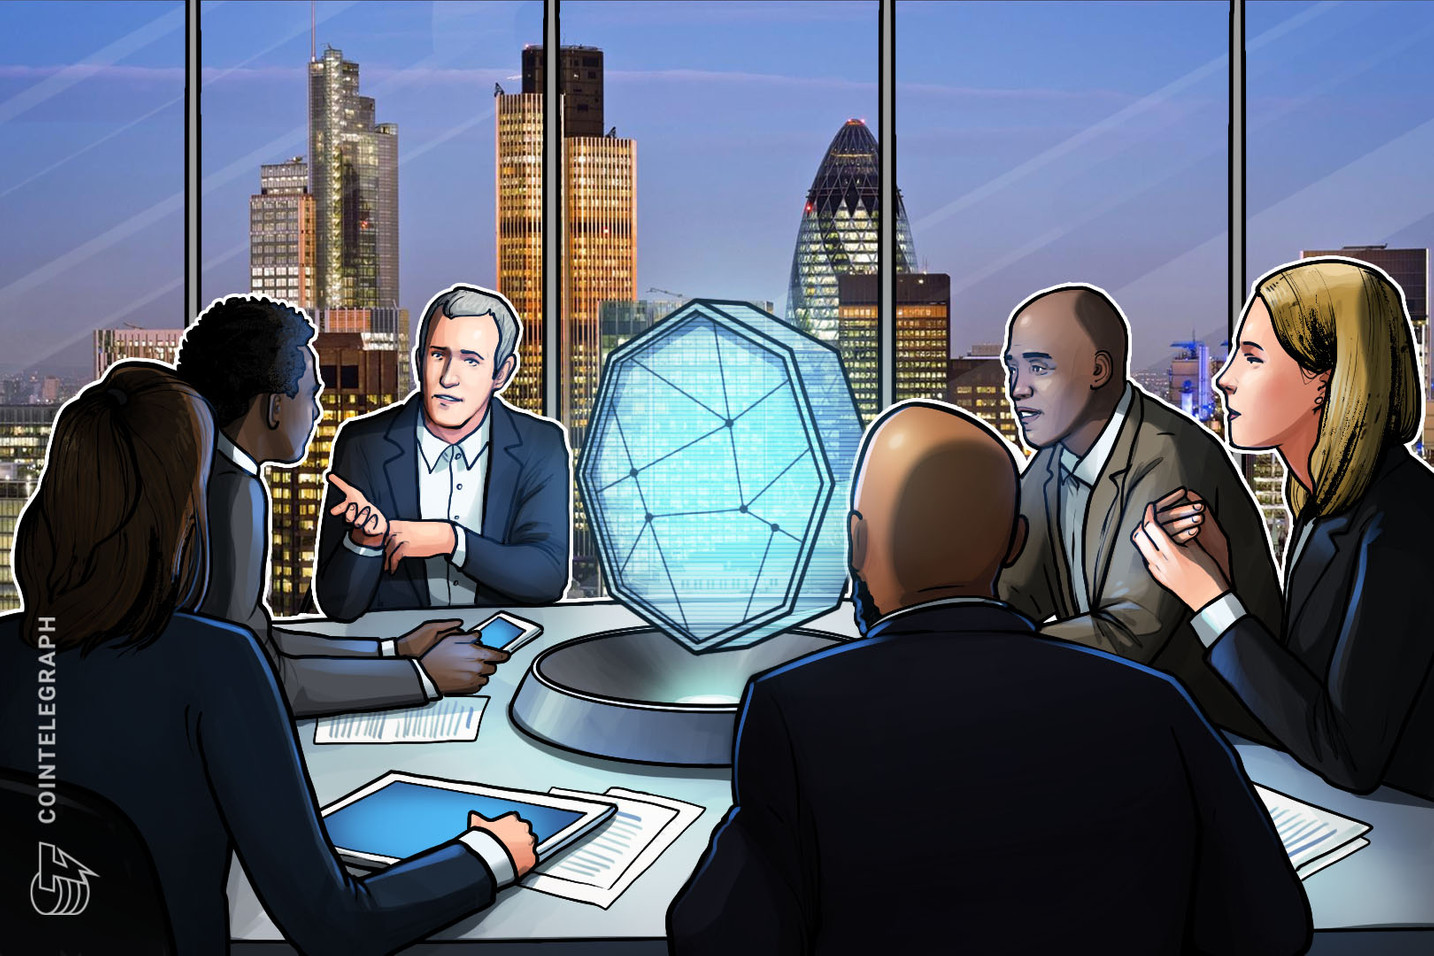 CFTC Committee to Hold Remote Meeting on DLT and Digital Currencies